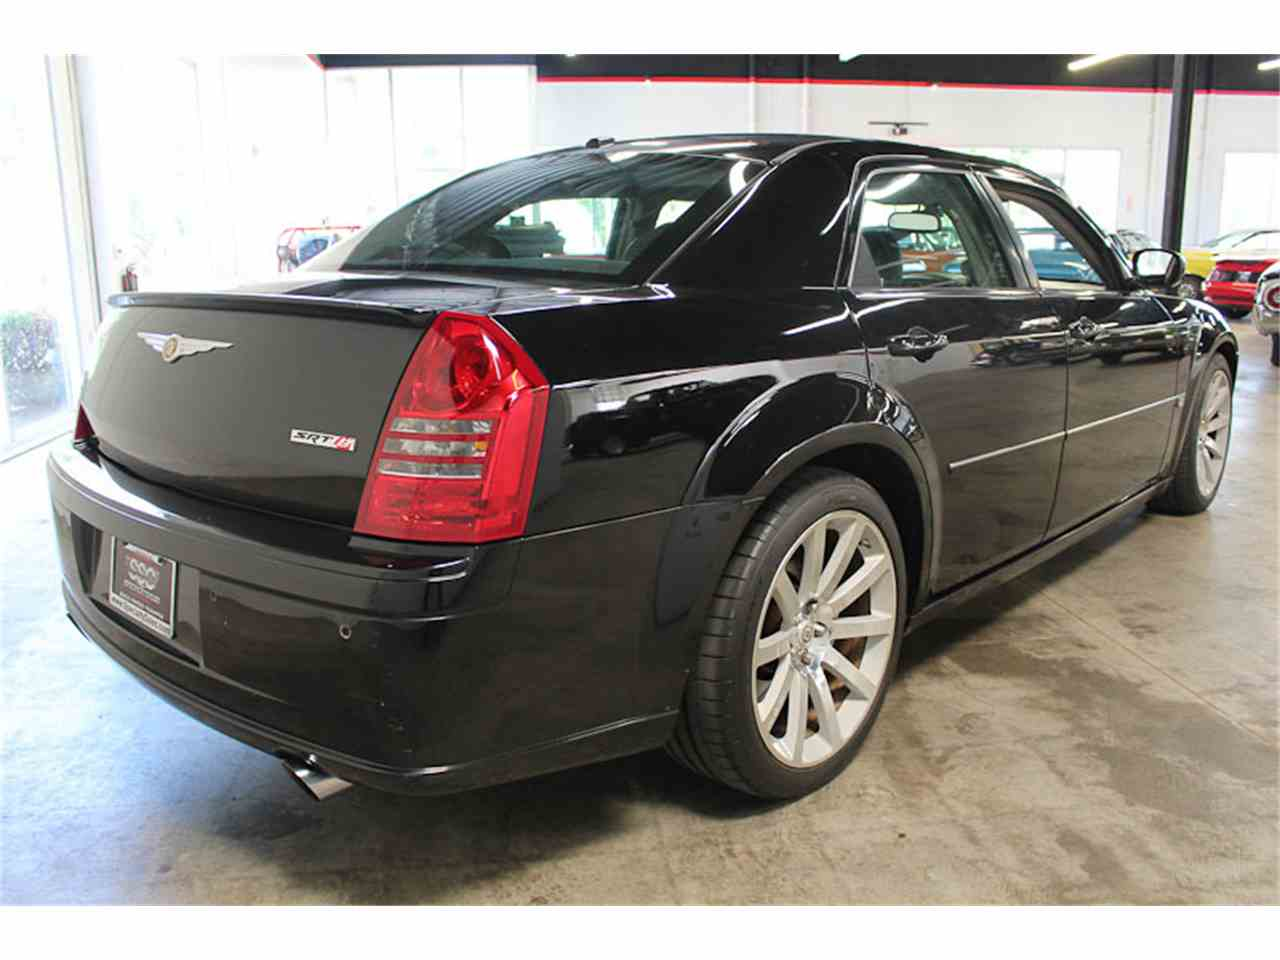 Large Picture of 2007 Chrysler 200 - $12,990.00 Offered by Specialty Sales Classics - LS4P